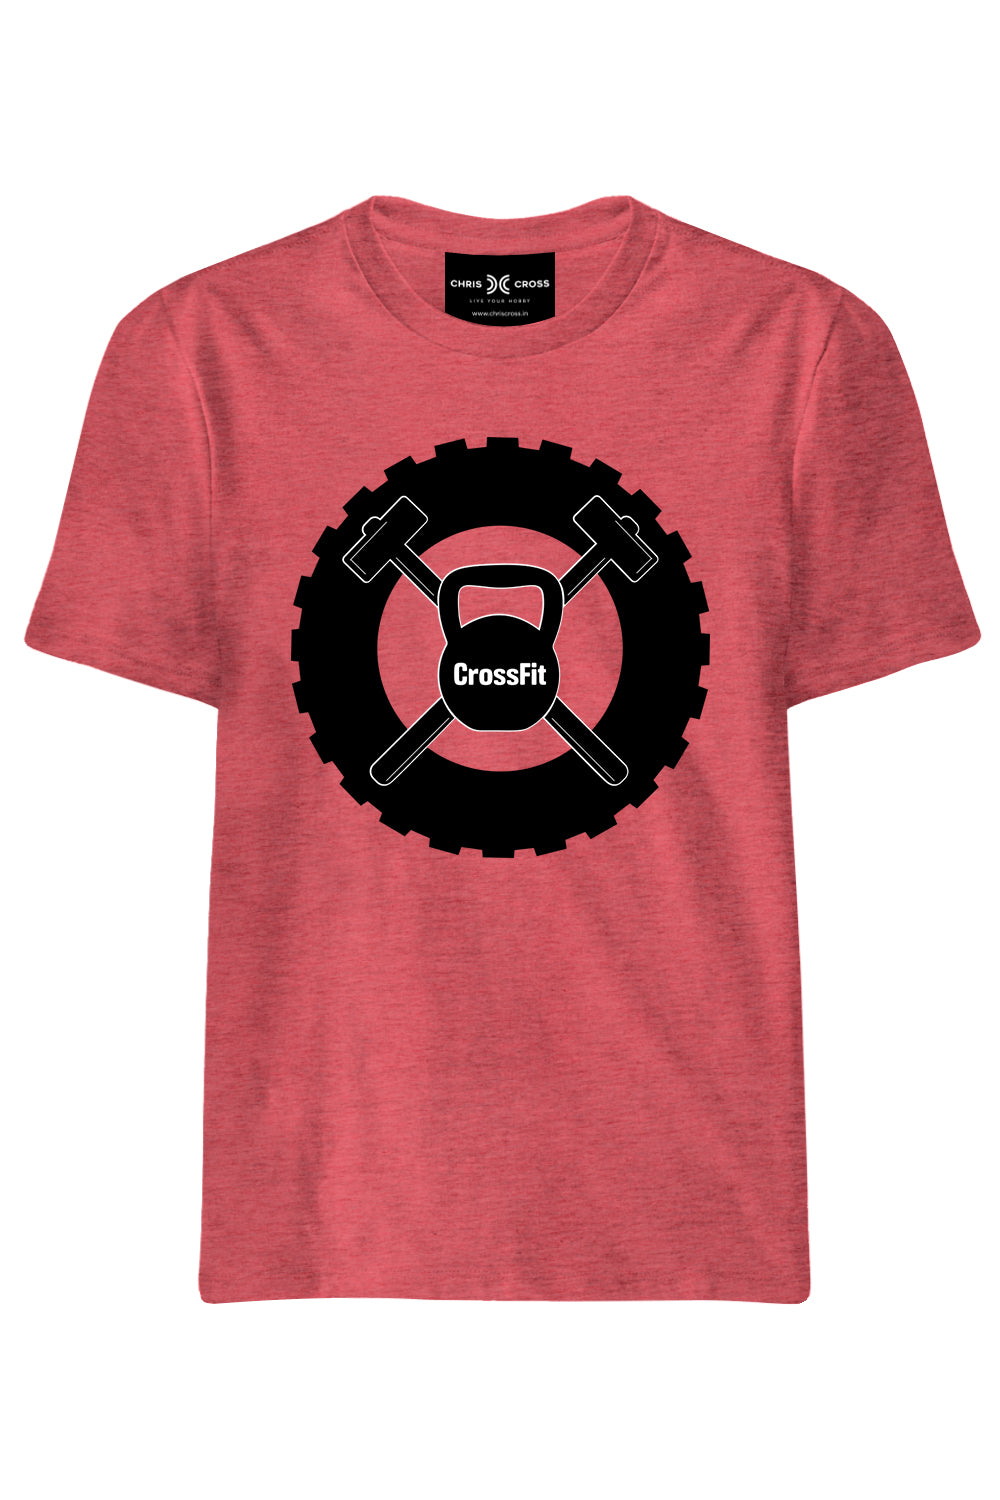 Cross Fit T Shirt - ChrisCross.in